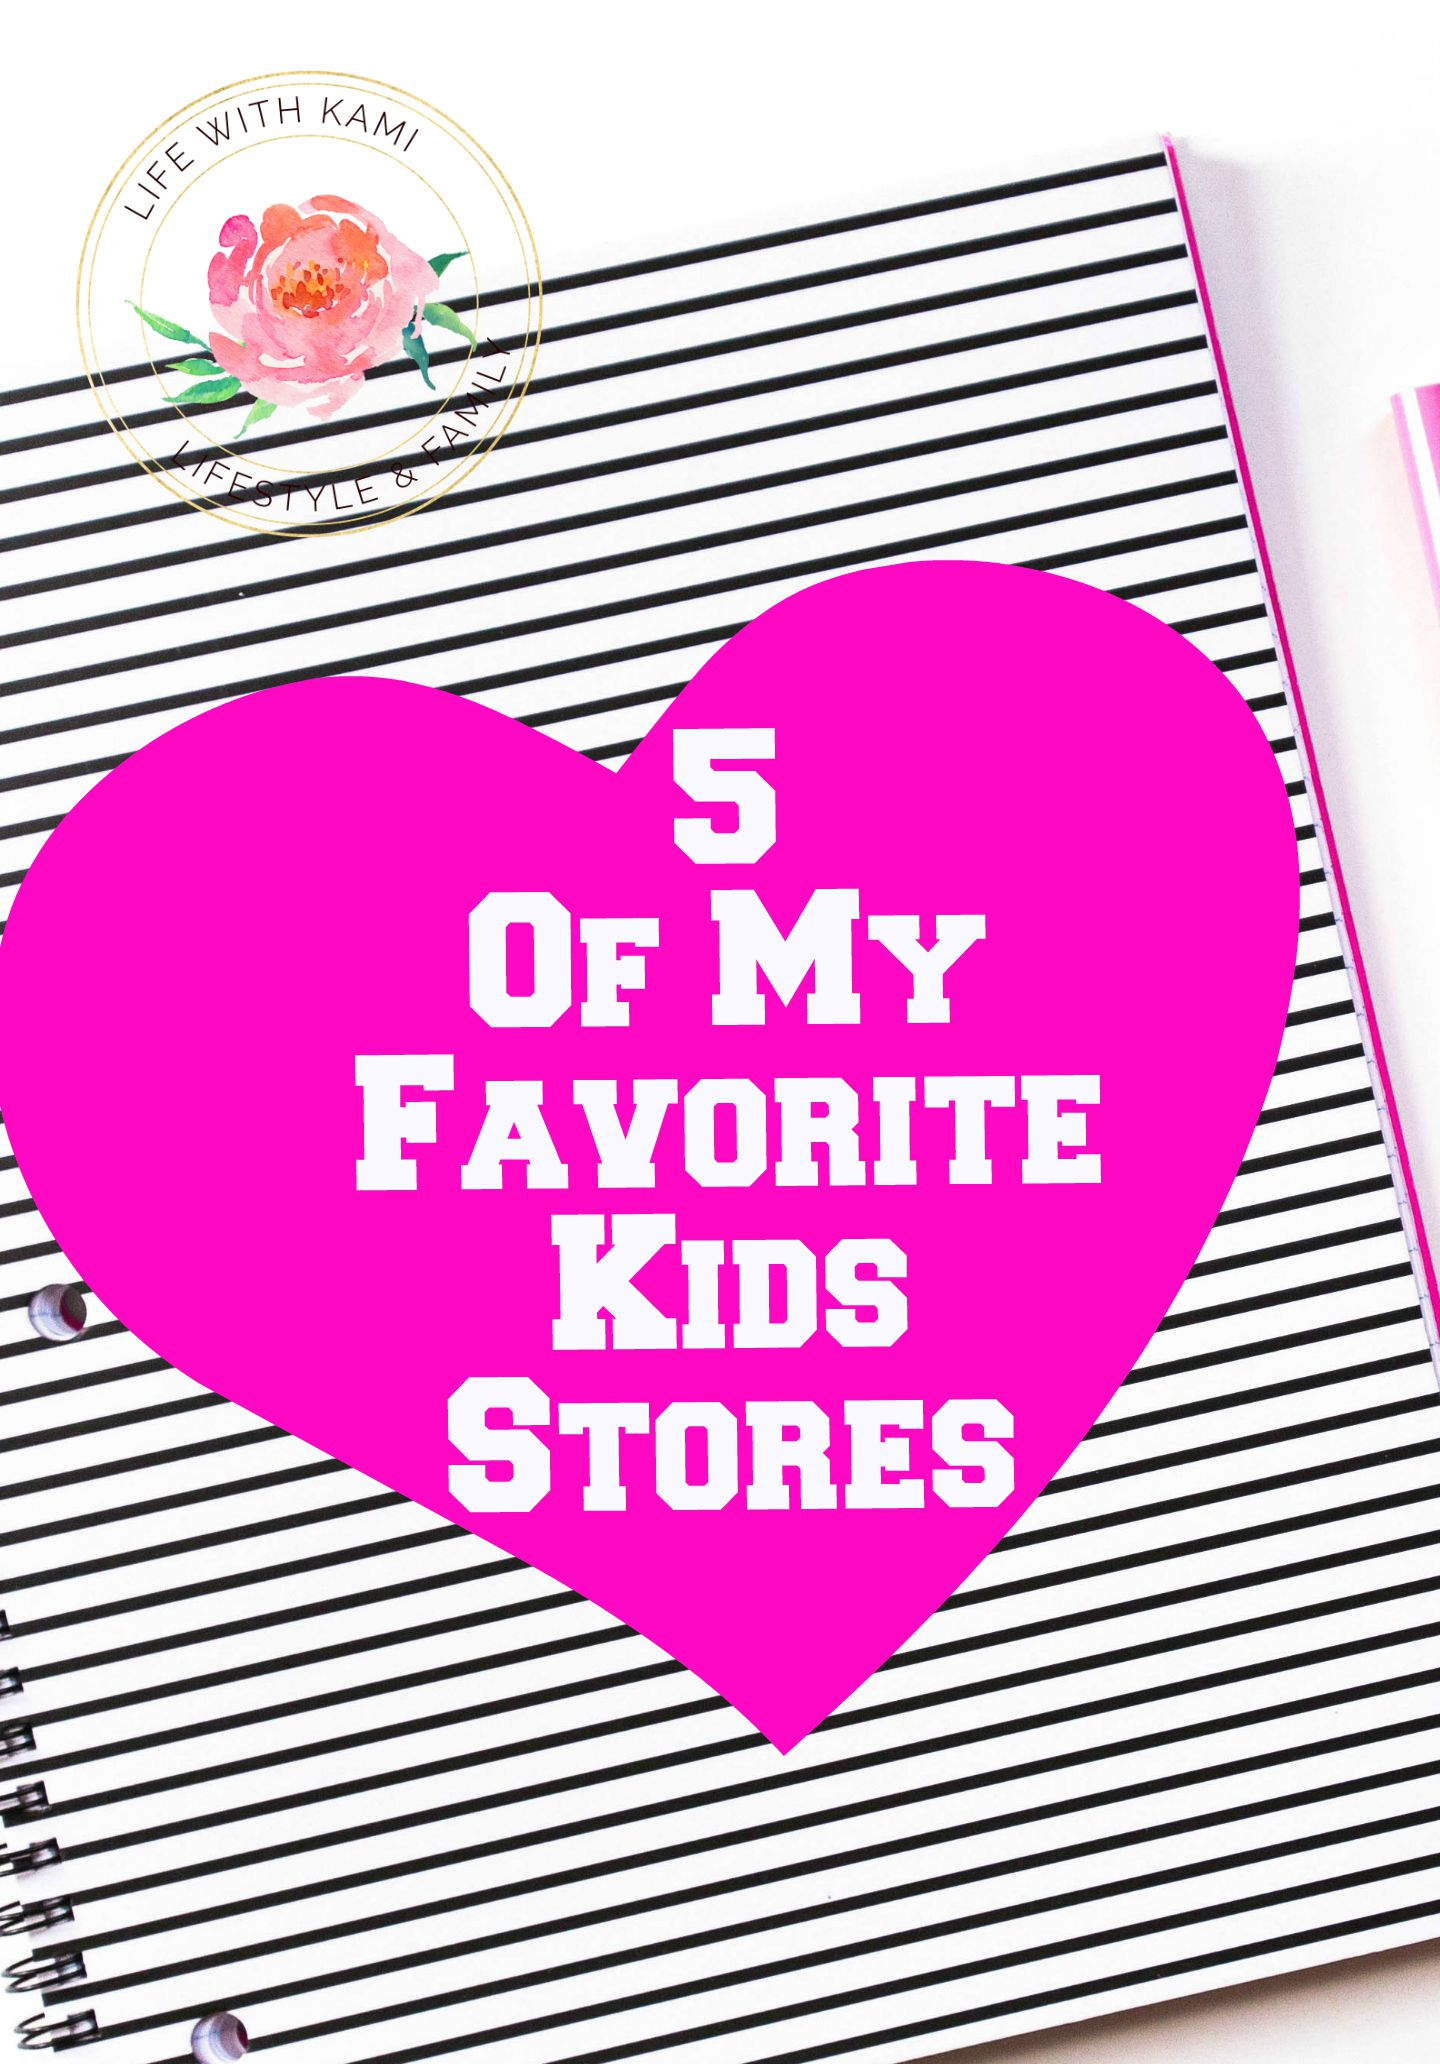 5 Of My Favorite Kid's Stores: Adorable & Affordable